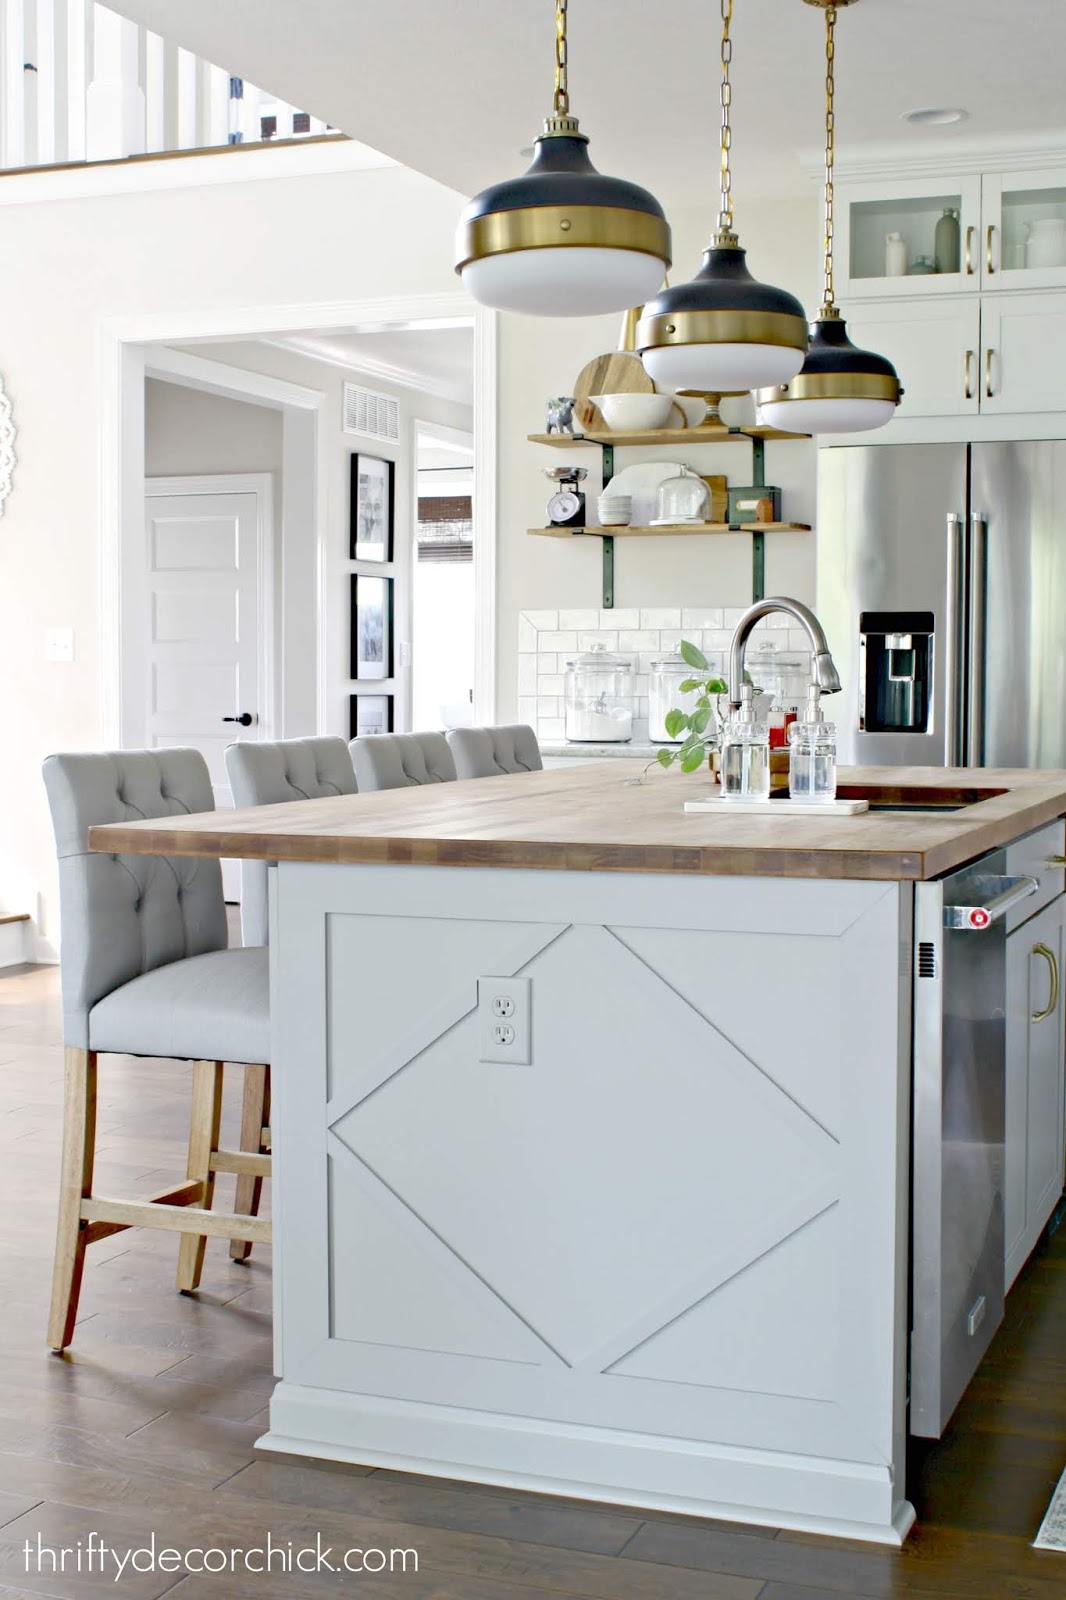 Adding detail to end of kitchen island